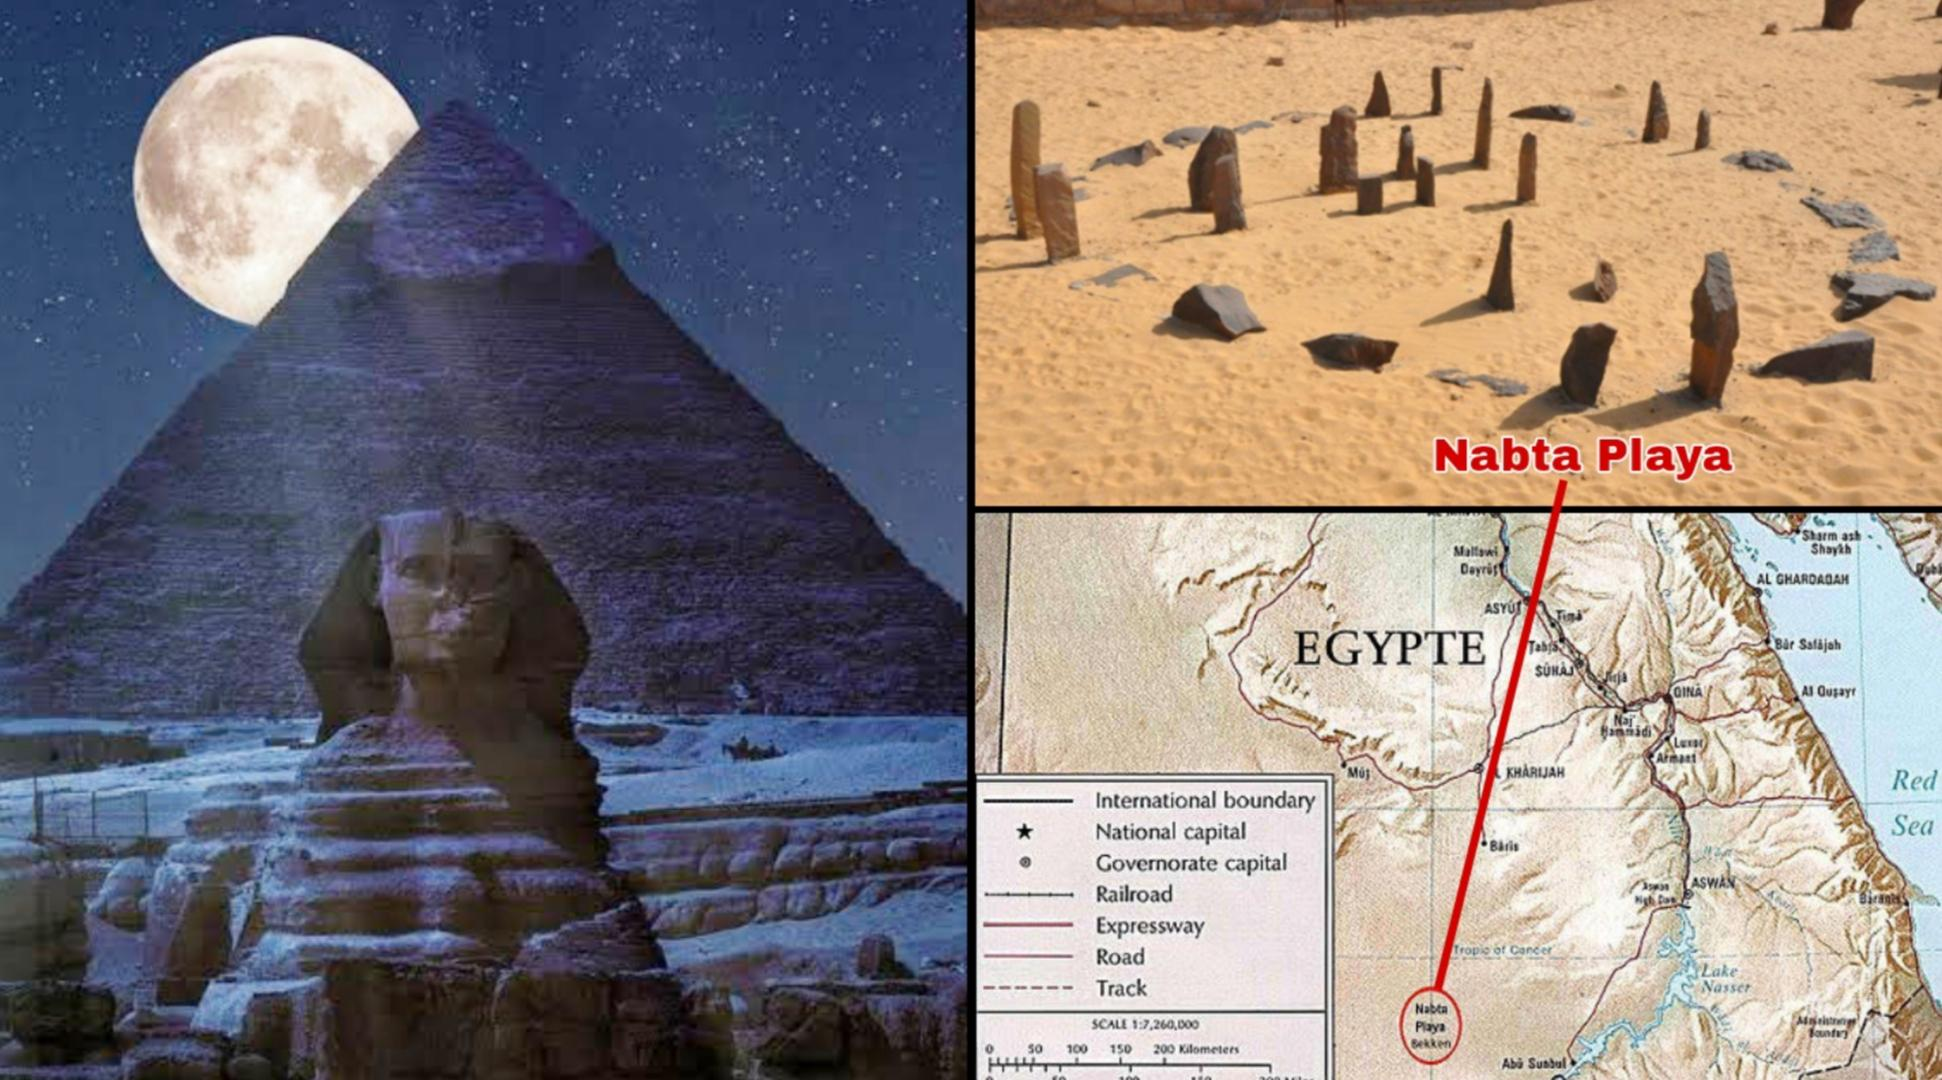 Africa created stars & moon system 7,000 years ago. World's oldest astronomical site